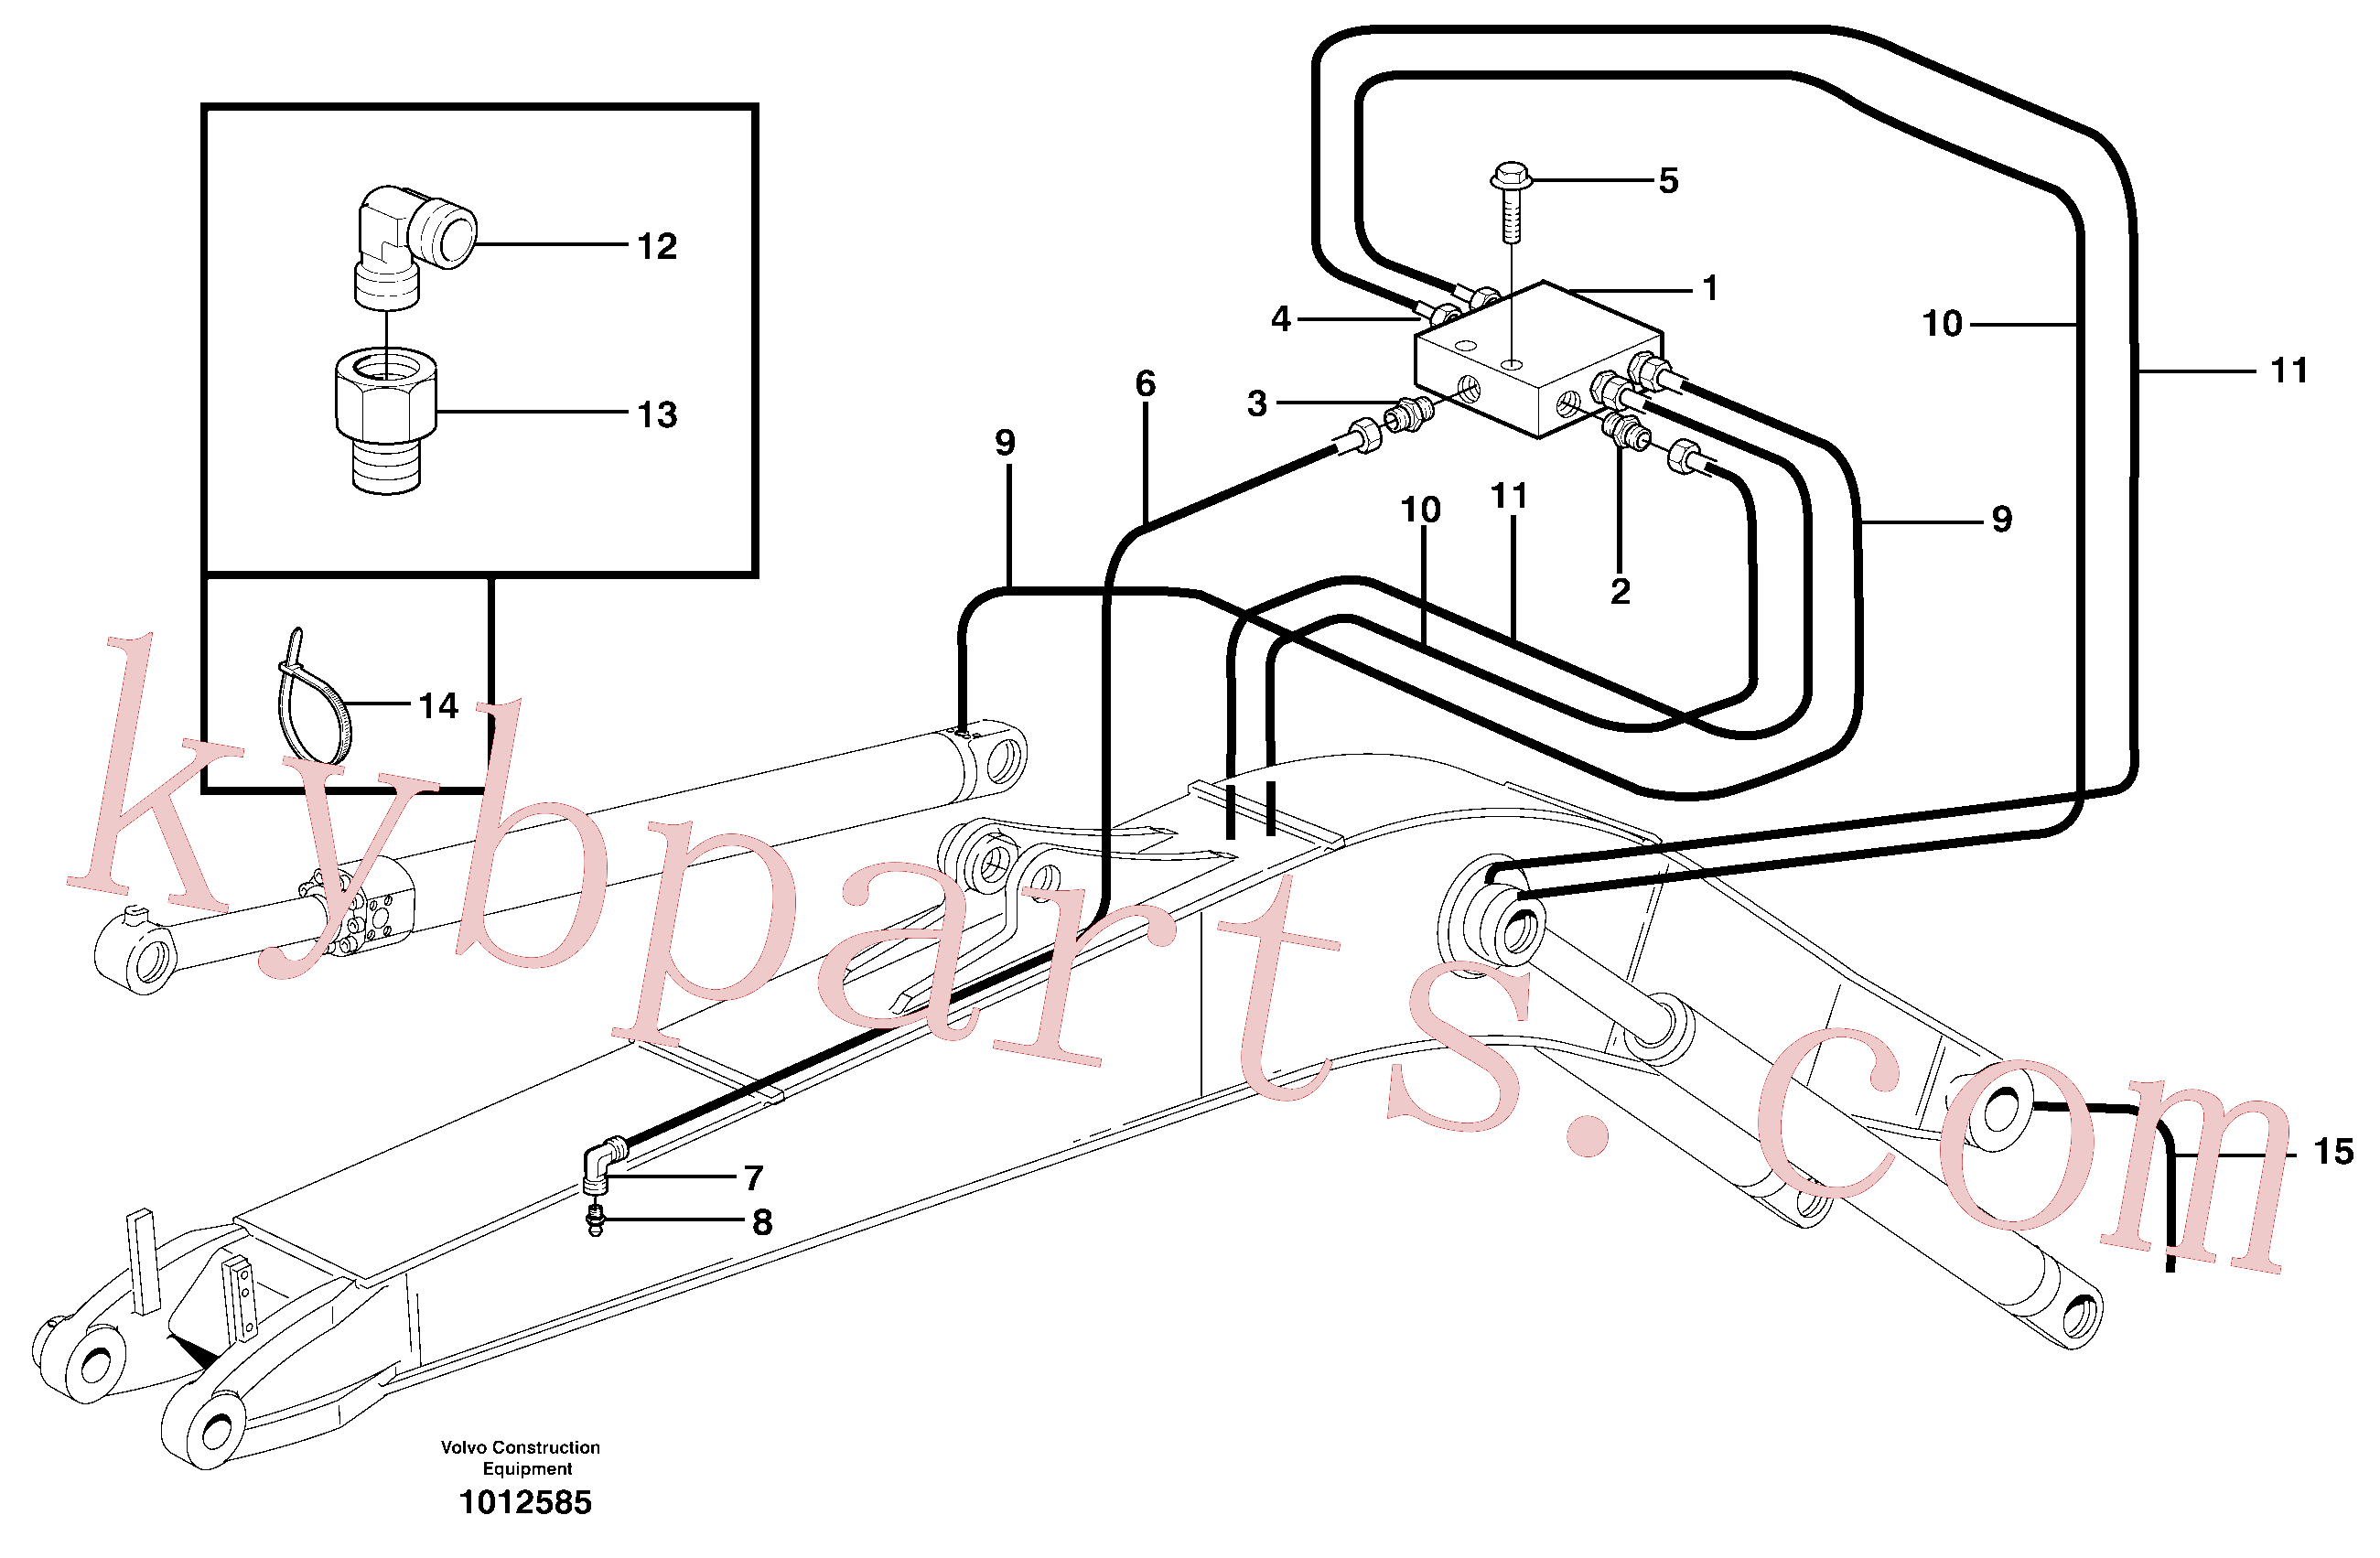 VOE14370347 for Volvo Central lubrication, mono boom(1012585 assembly)